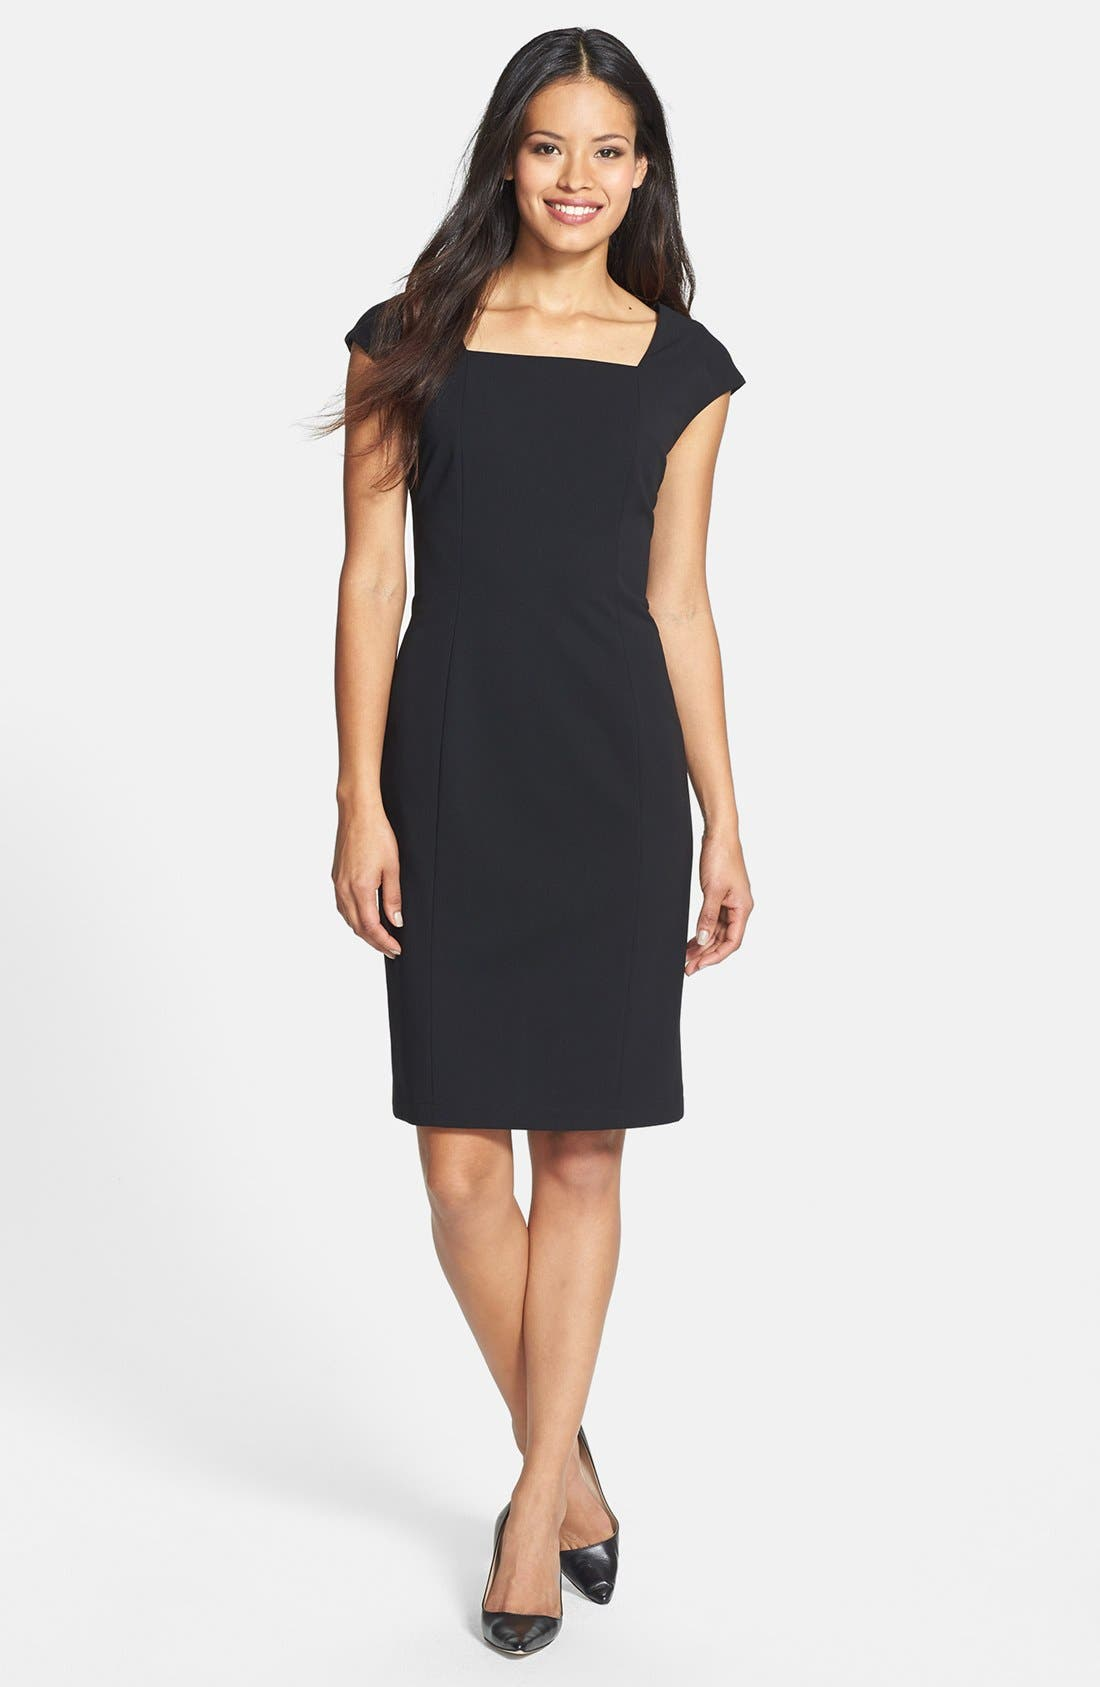 Alternate Image 1 Selected - Lafayette 148 New York Square Neck Knit Sheath Dress